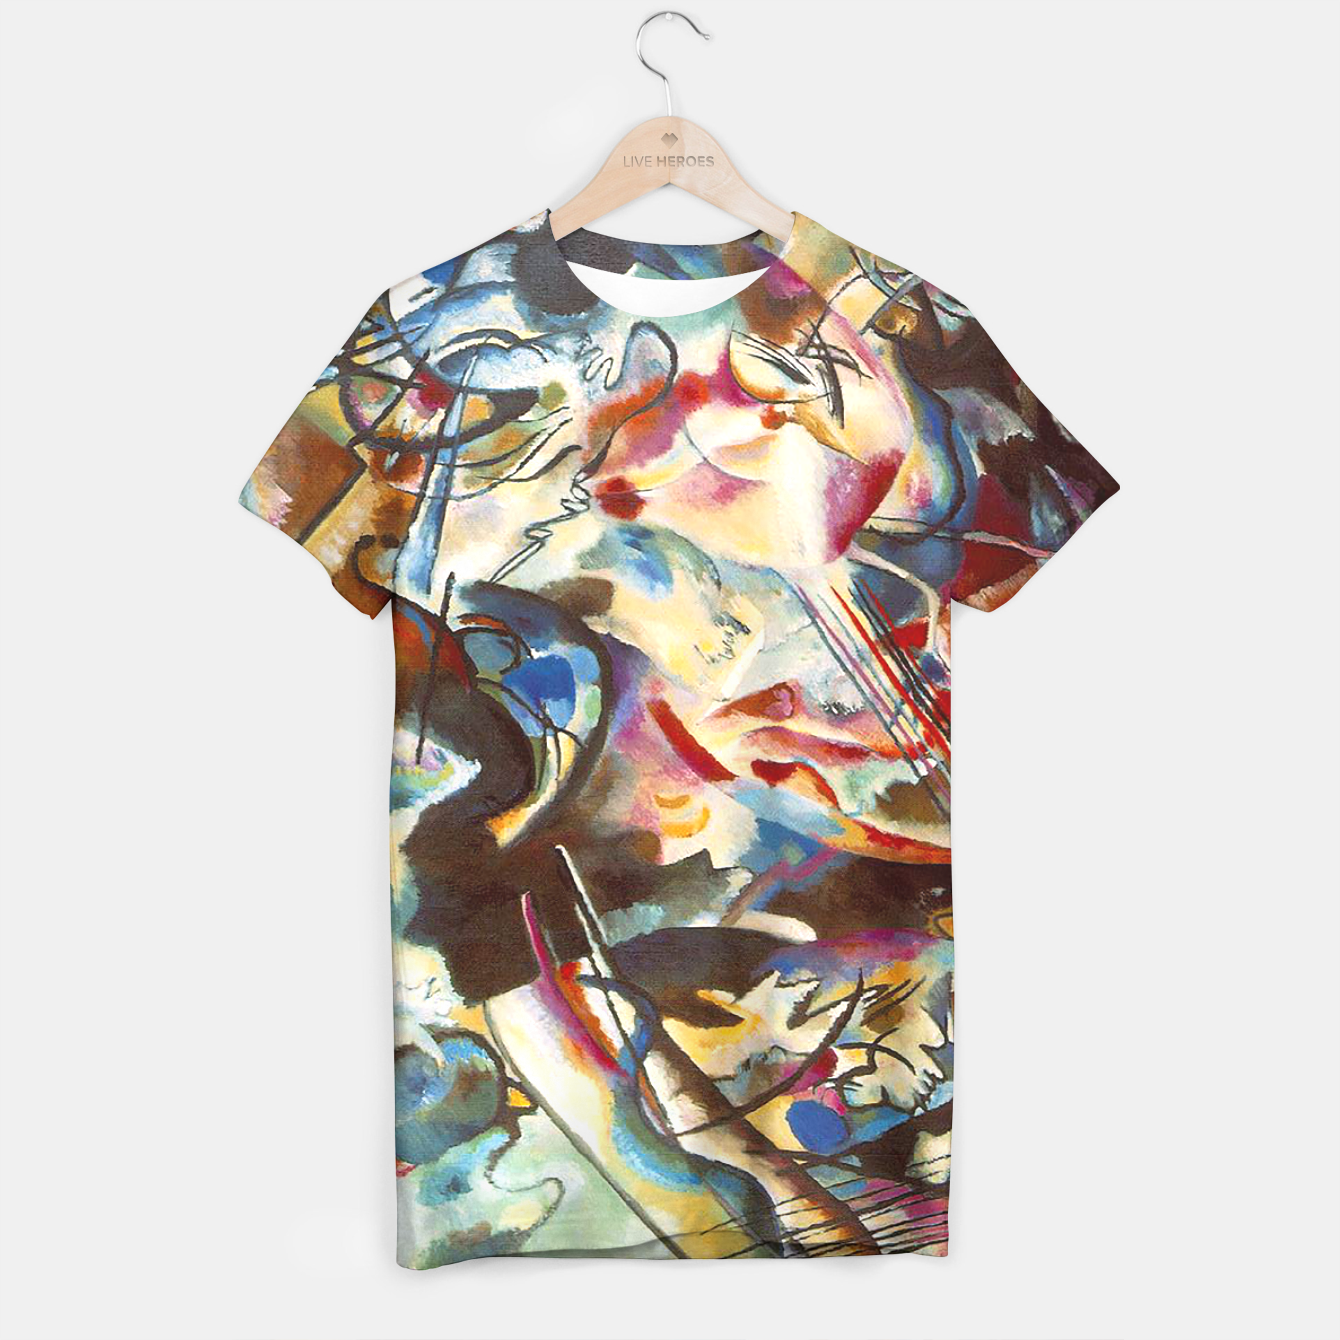 Image of COMPOSiTiON SiX BY VASSiLY KANDiNKSY T-shirt - Live Heroes